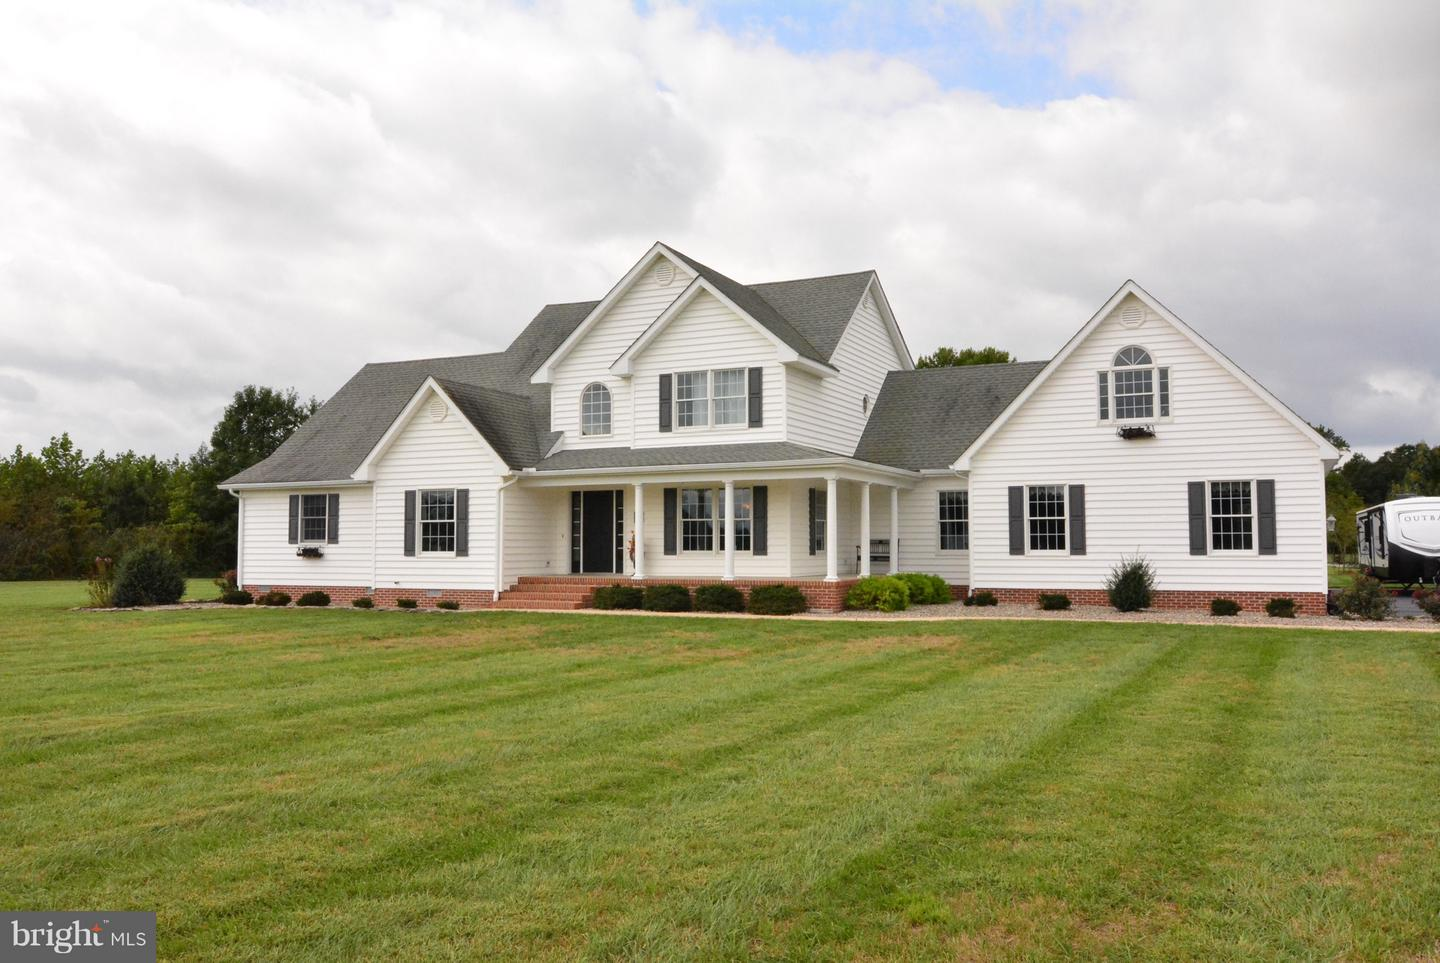 View this Georgetown, Delaware Listing - Real Estate and Home Sales